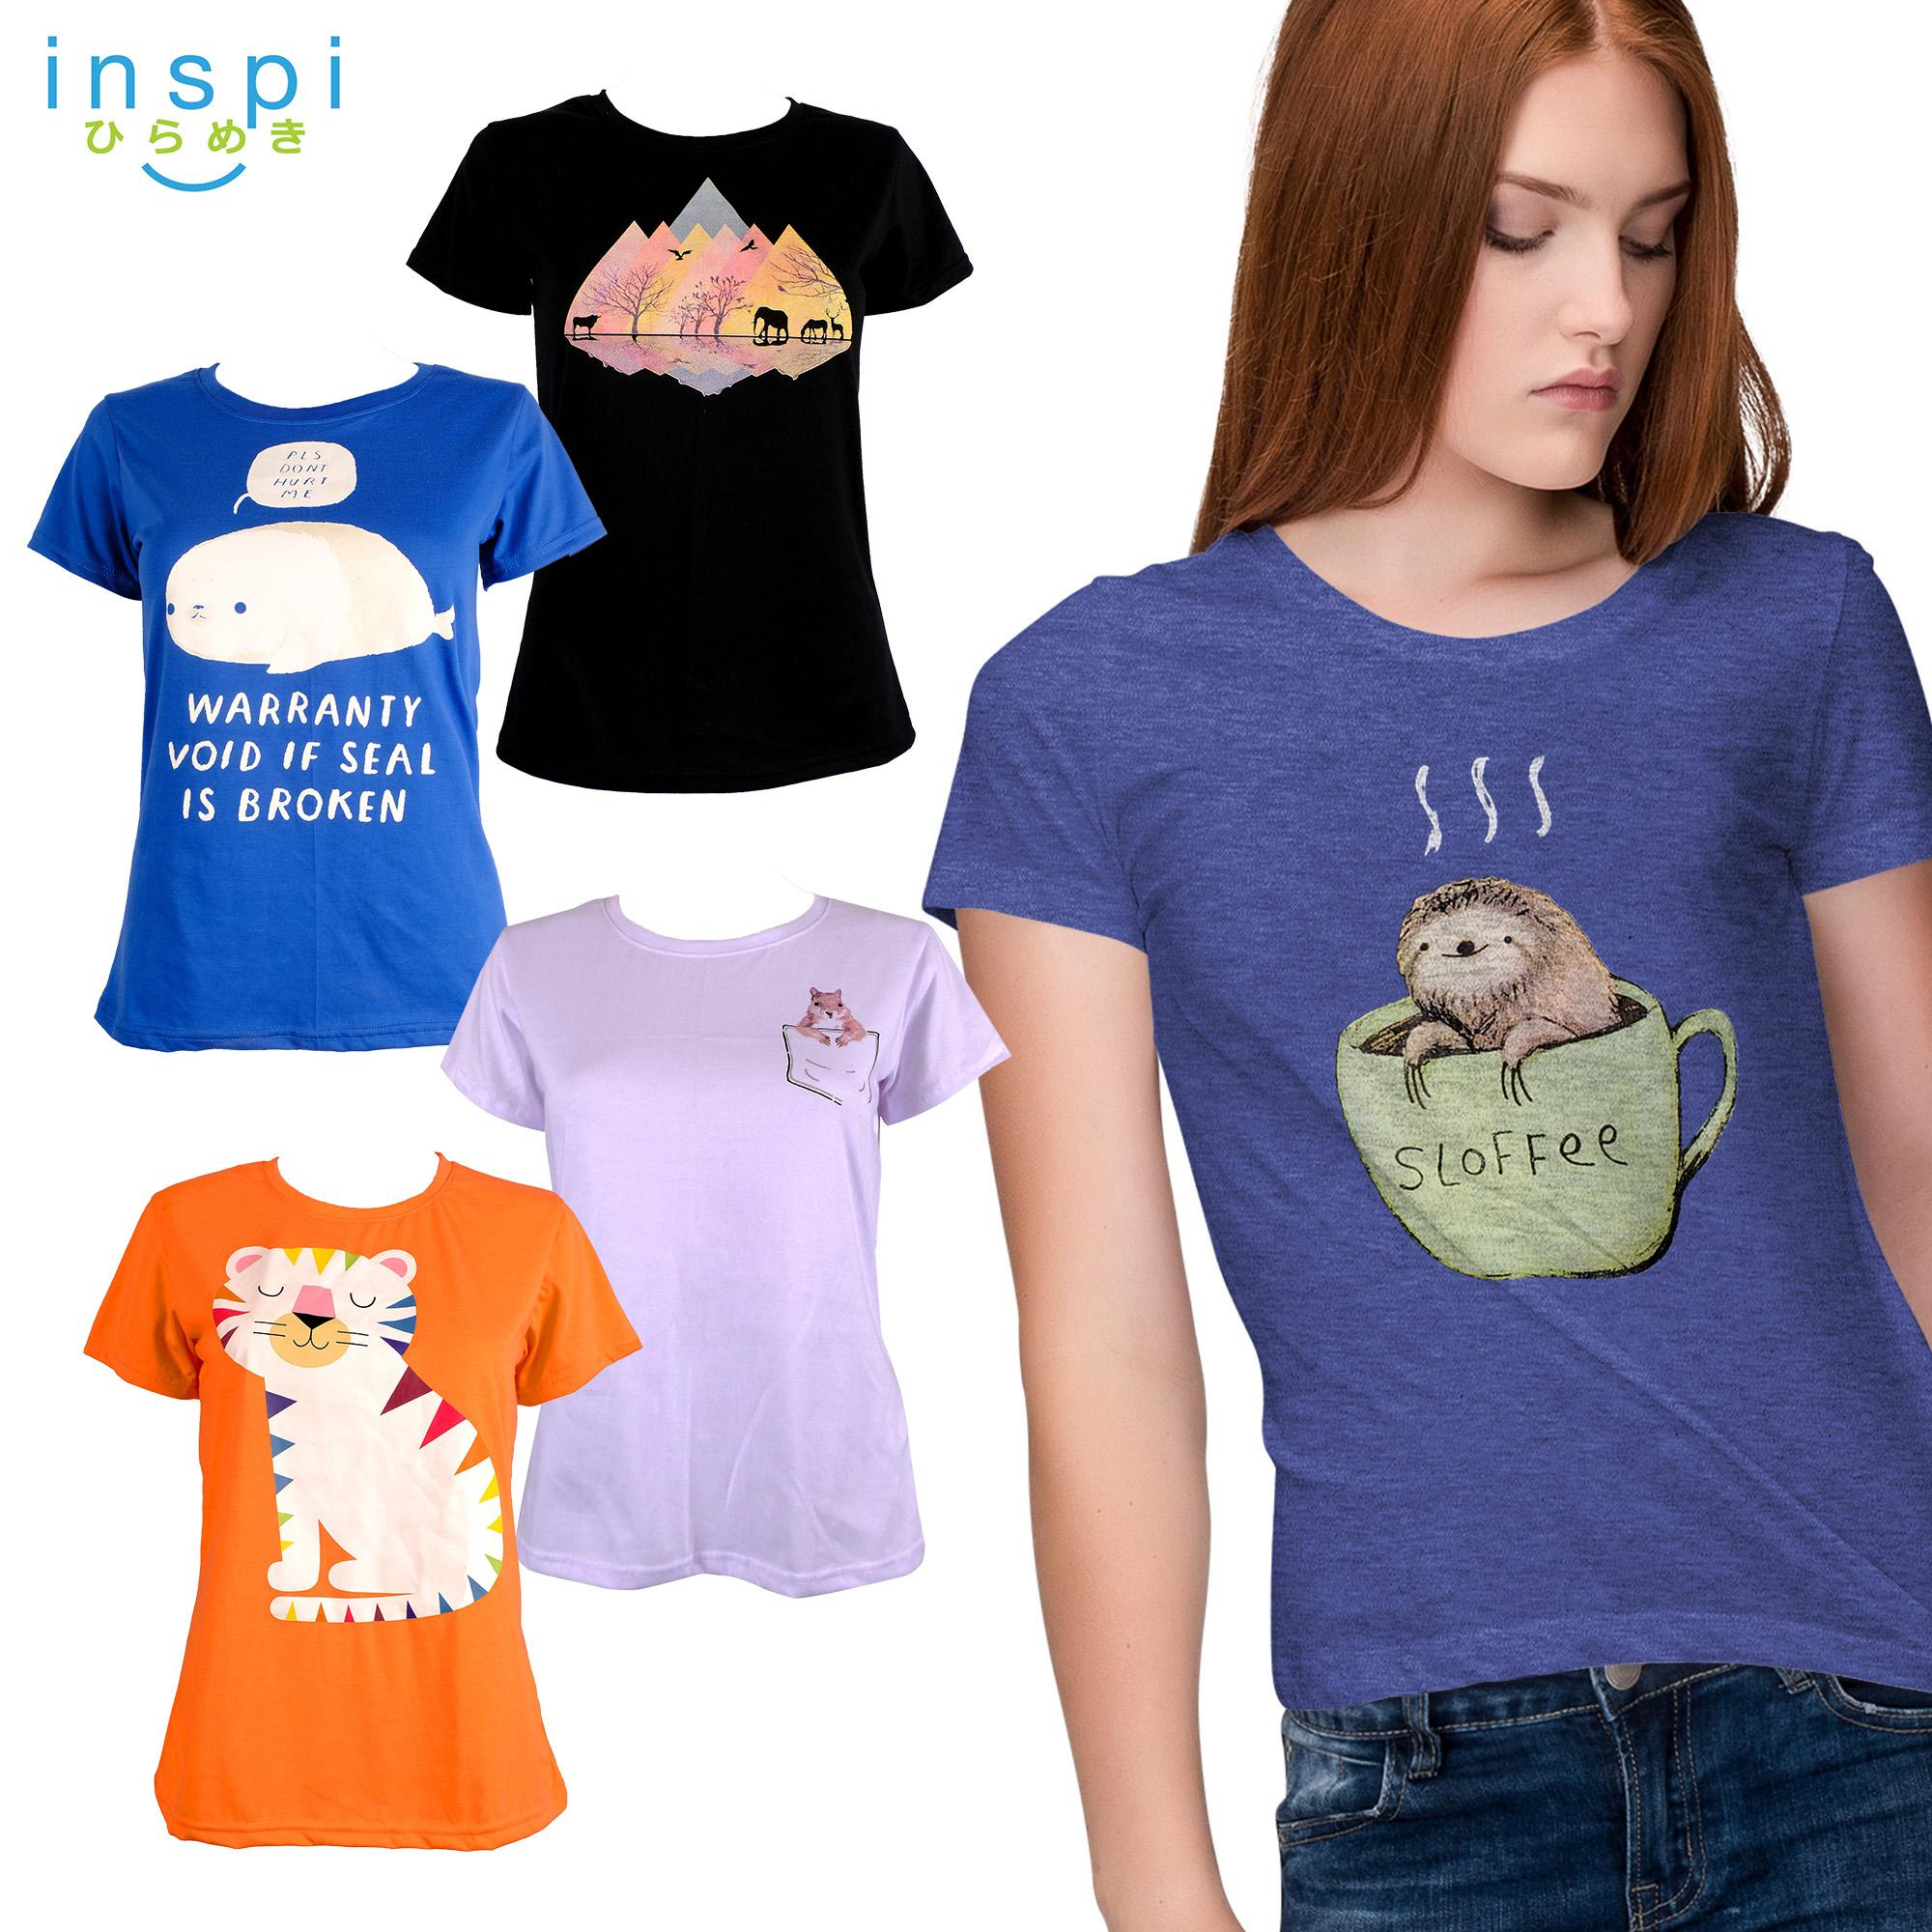 f7ae7d16 INSPI Tees Ladies Pet Collection tshirt printed graphic tee Ladies t shirt  shirts women tshirts for